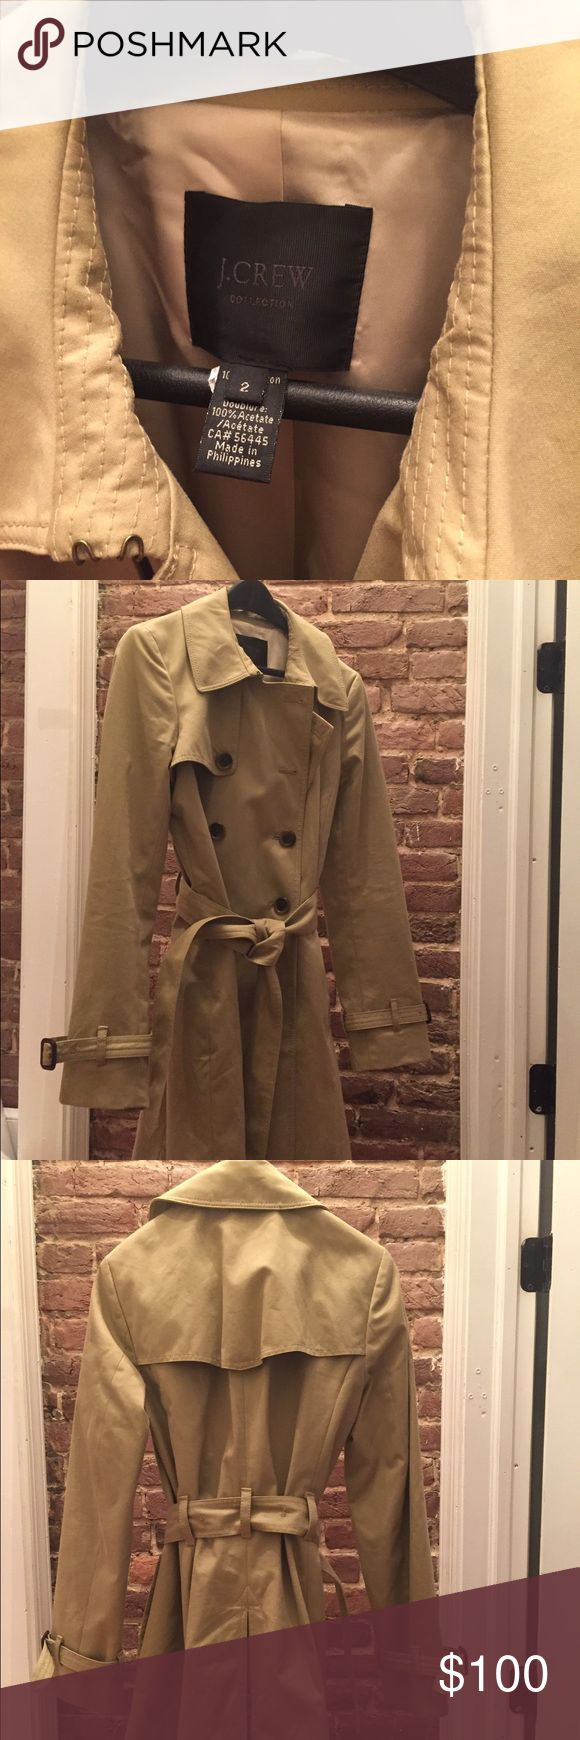 J.Crew Collection Size 2 Icon Trench This coat comes from a smoke free environment and has only been worn a handful of times. Requires dry cleaning but is in great condition. No stains or snags. J. Crew Jackets & Coats Trench Coats